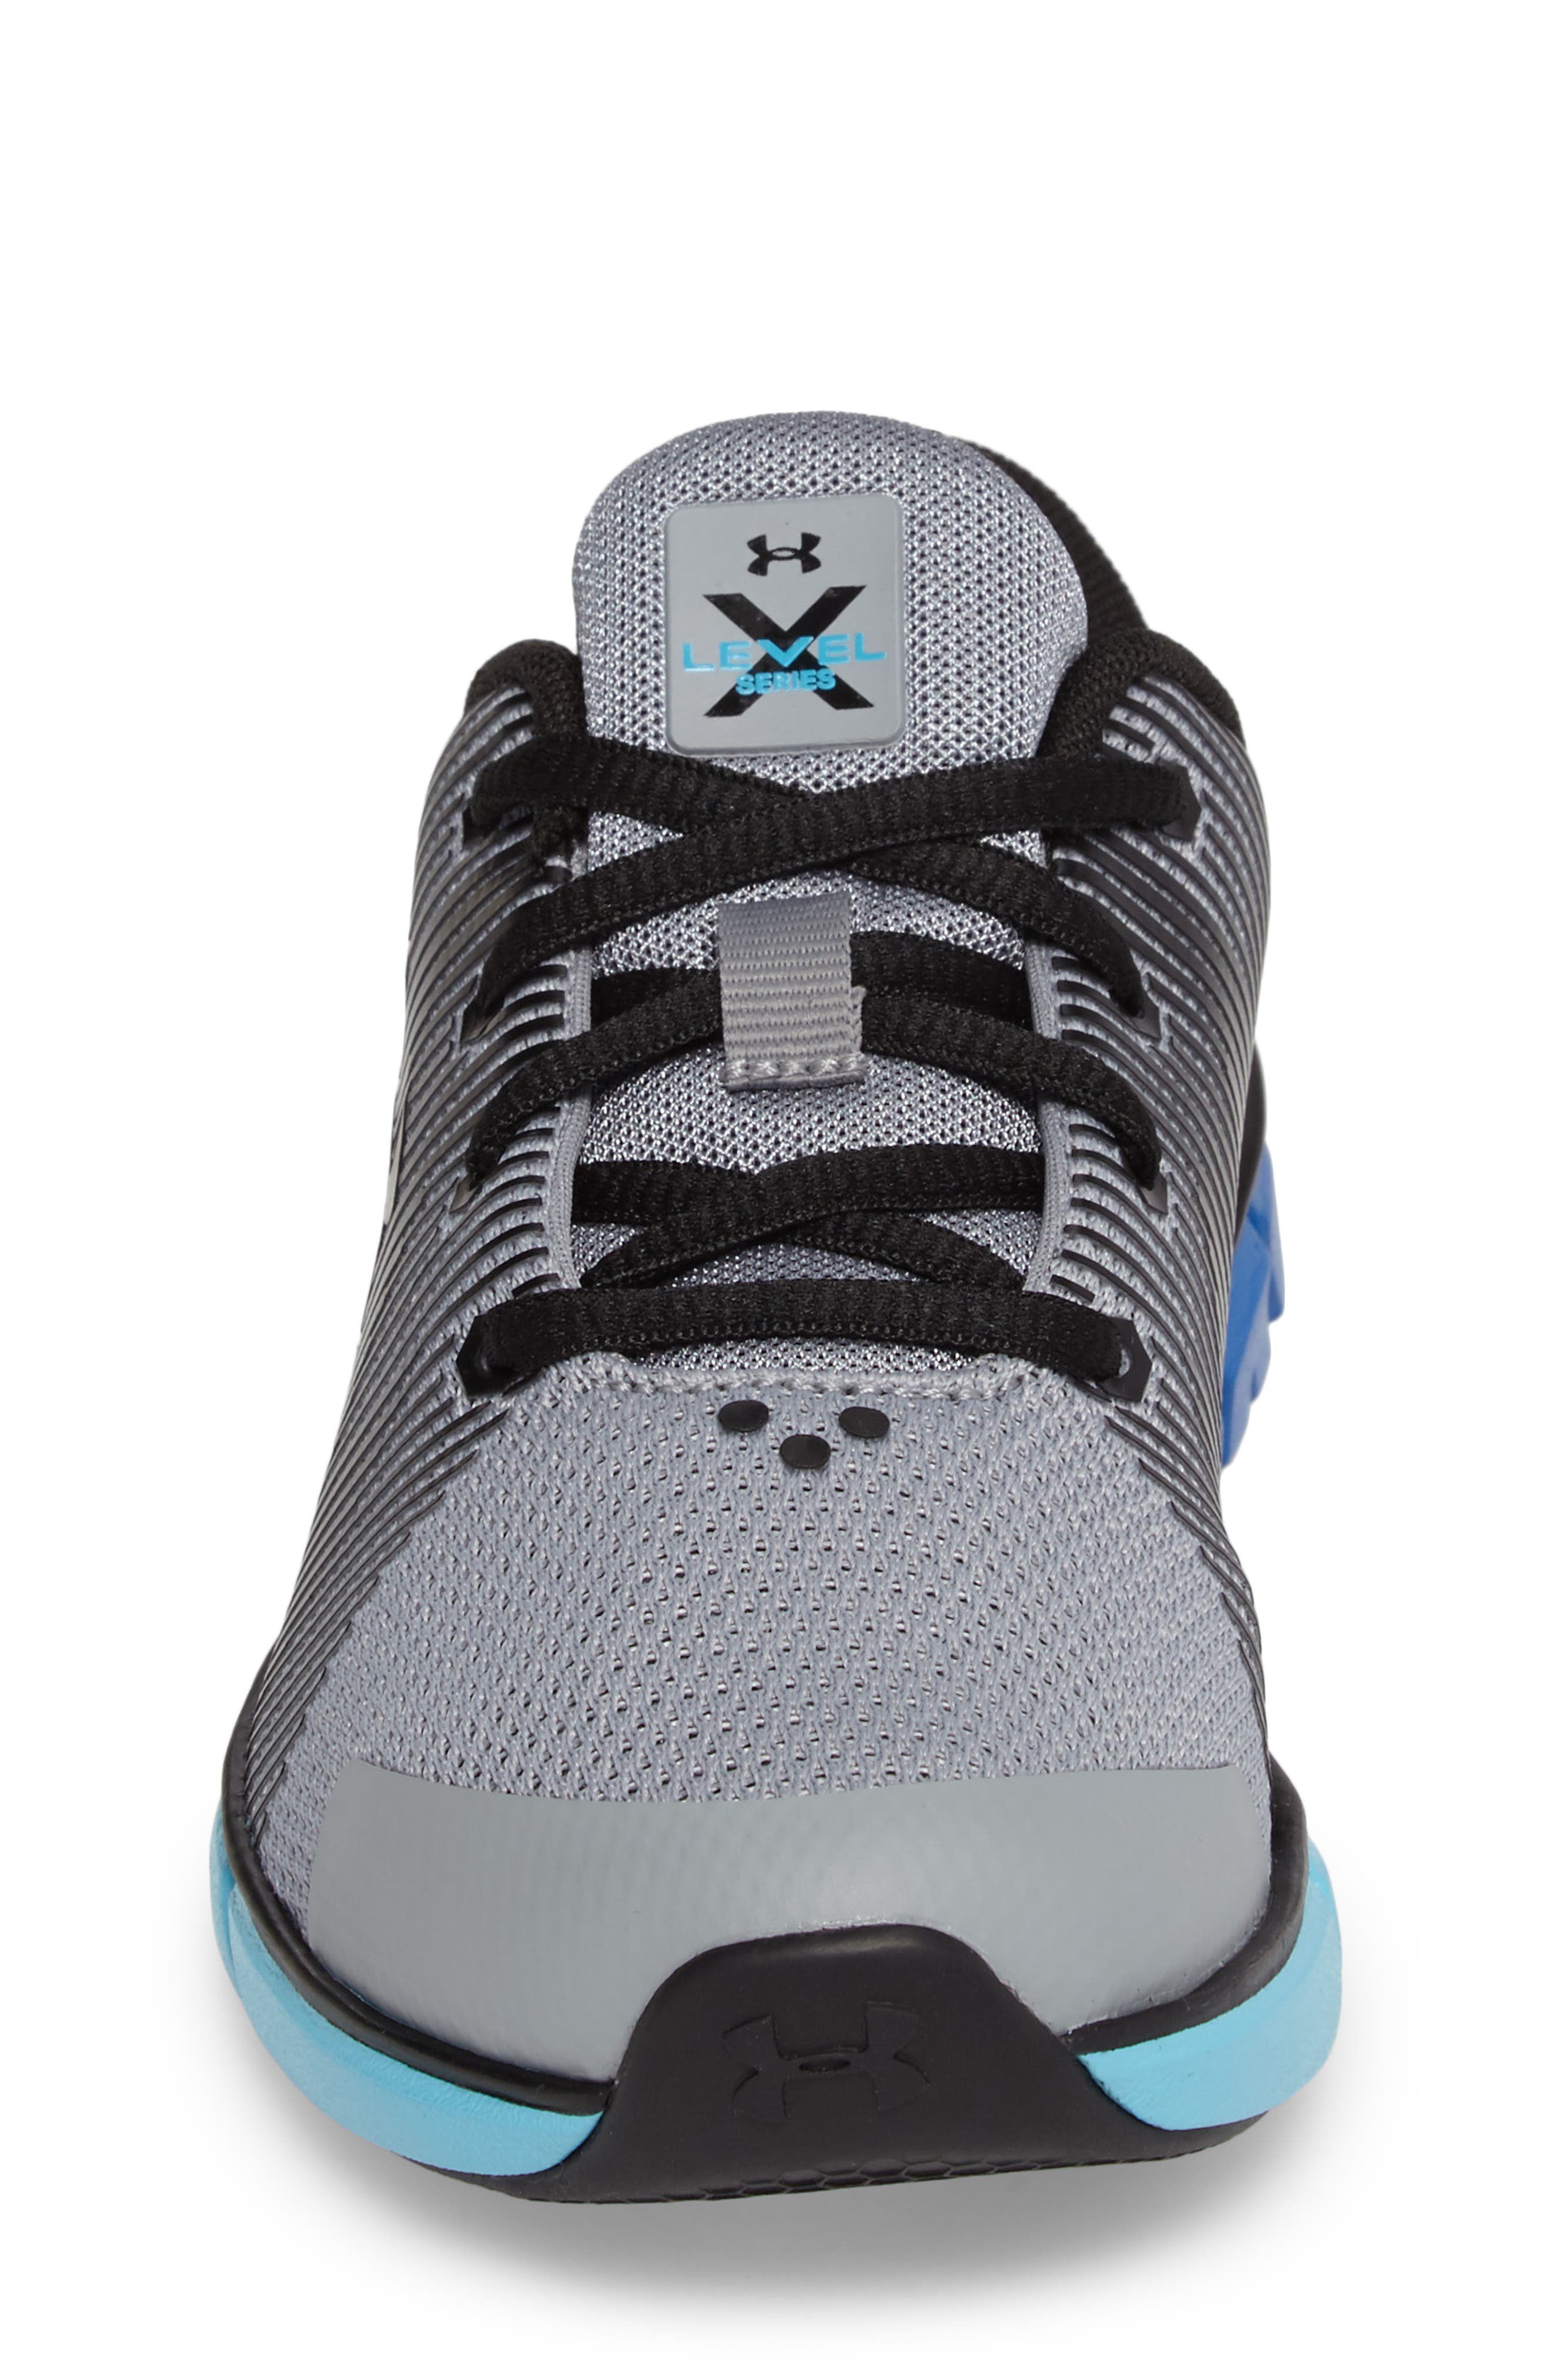 BGS X Level Scramjet Running Shoe,                             Alternate thumbnail 4, color,                             036